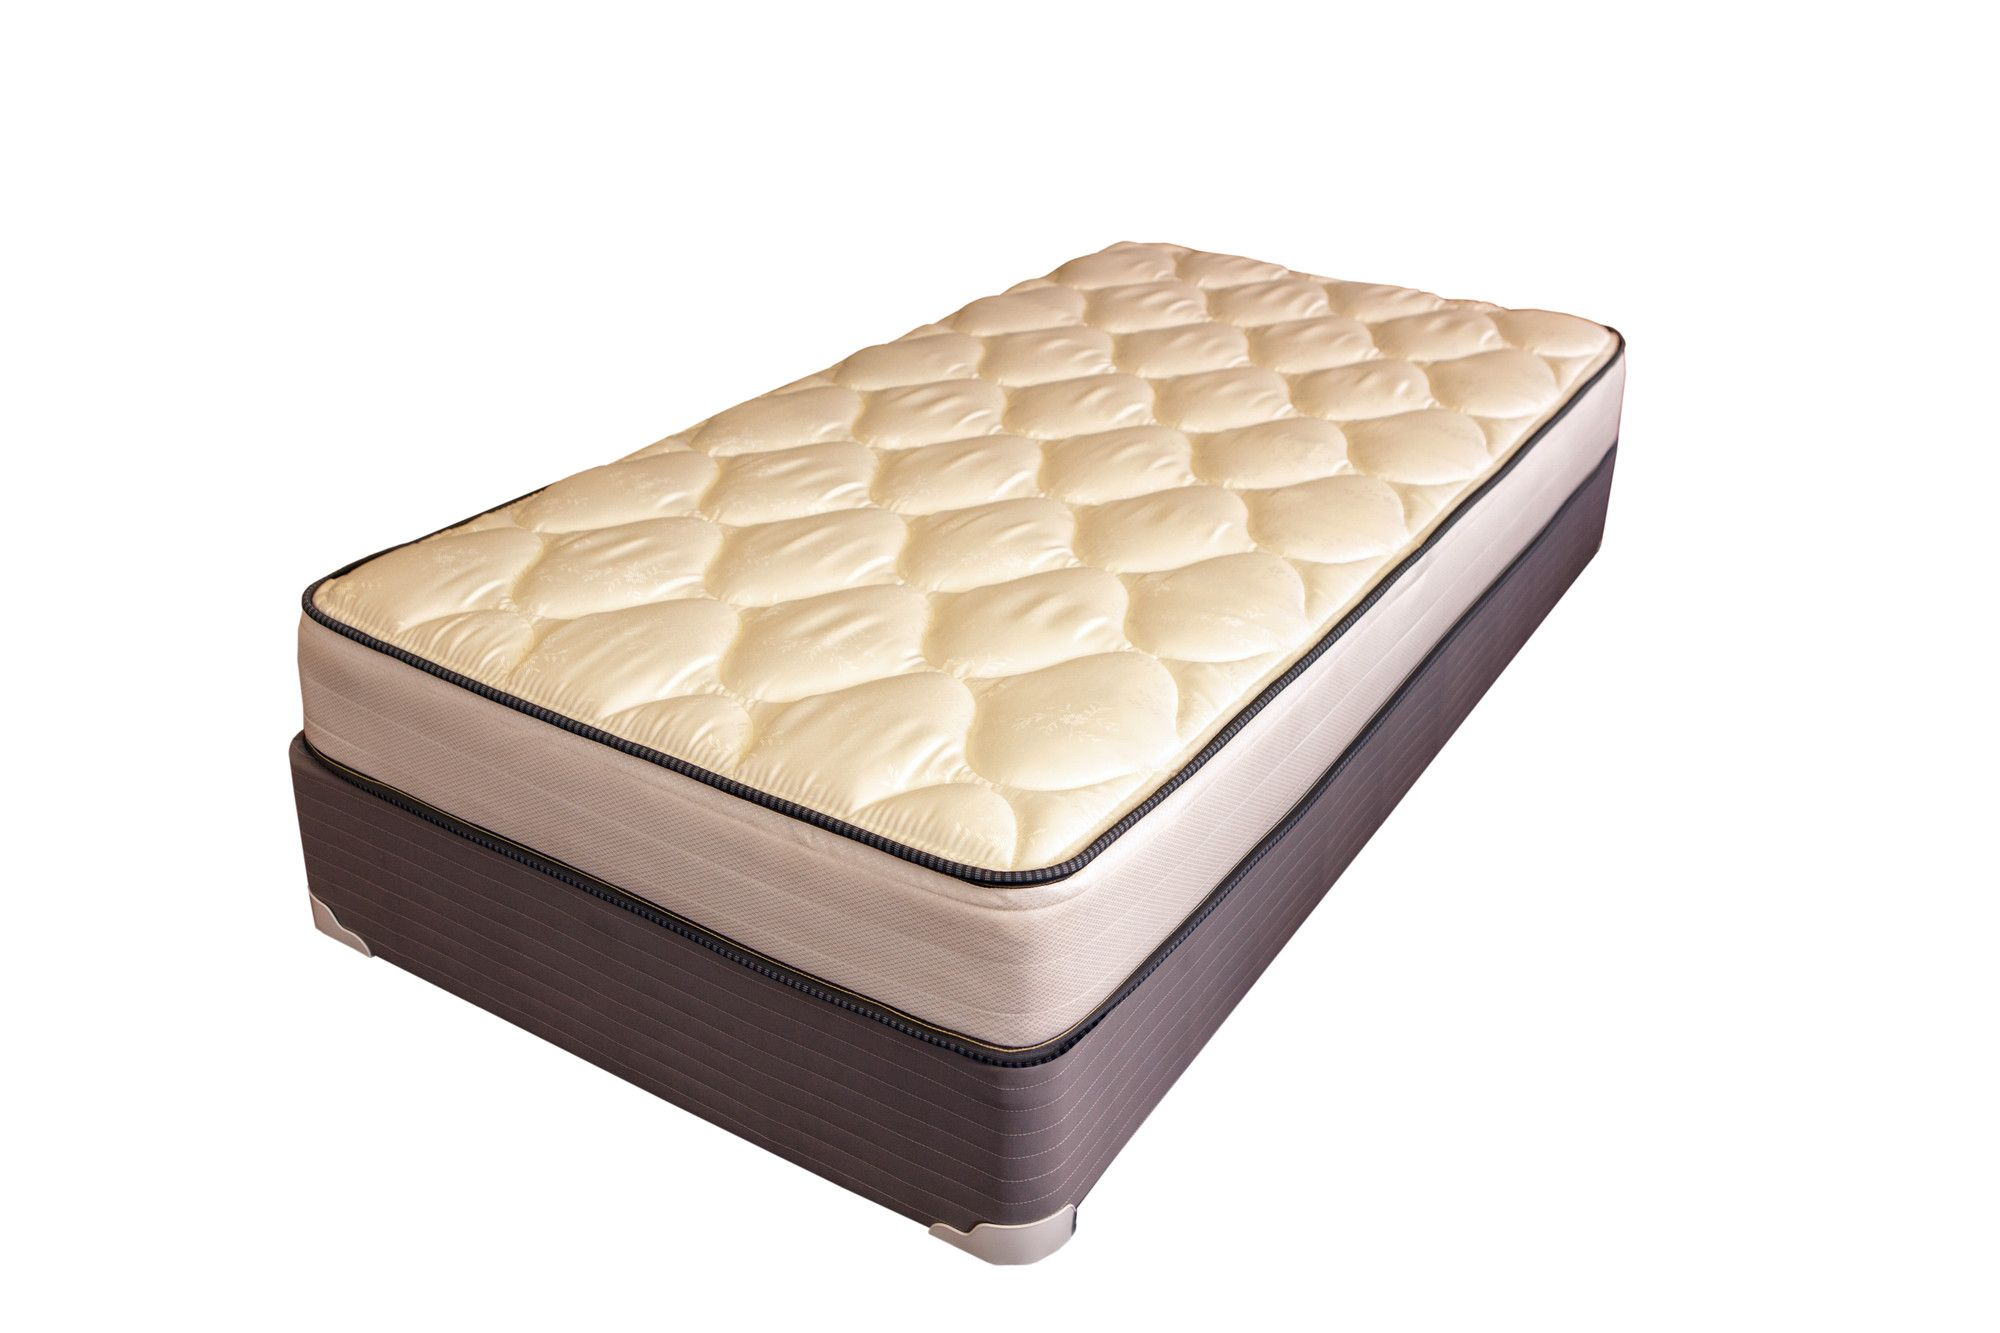 spine support 8 alina foam mattress wayfair king koil mattress